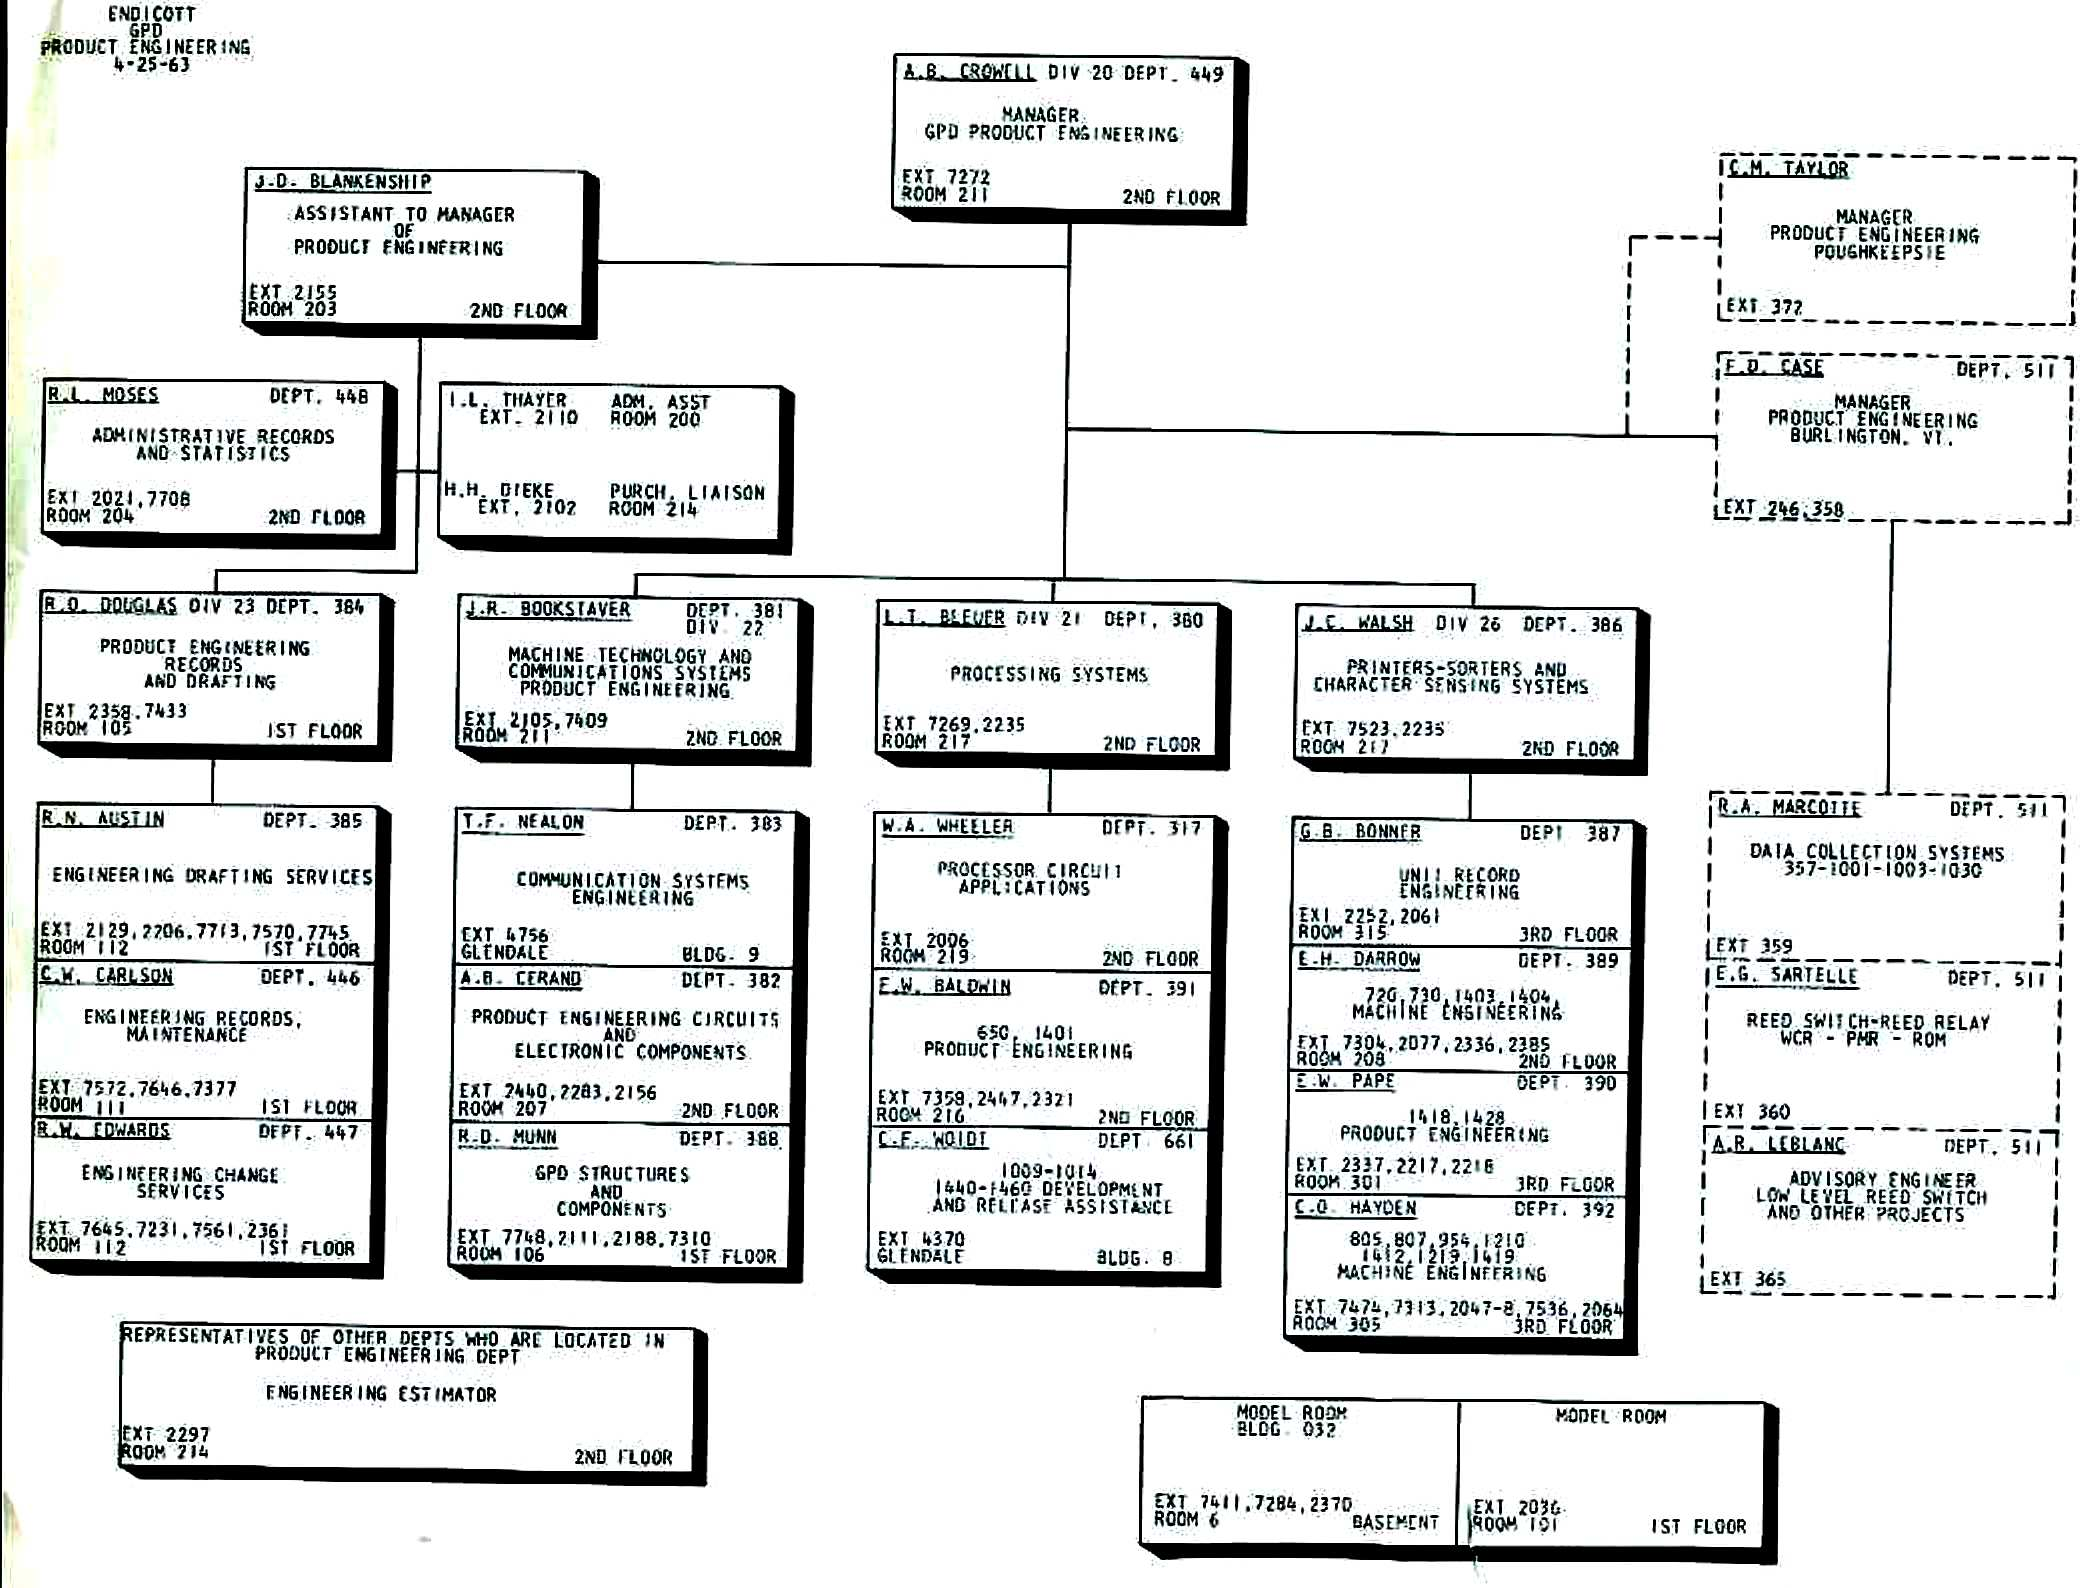 1950steambioshtml Ibm 1620 Programming Manual On Physical Terminal Block Wiring Diagram This Is A 1963 Organization Chart For Product Engineering I Believe That The 1403 Printer Responsibility Was Transferred To At